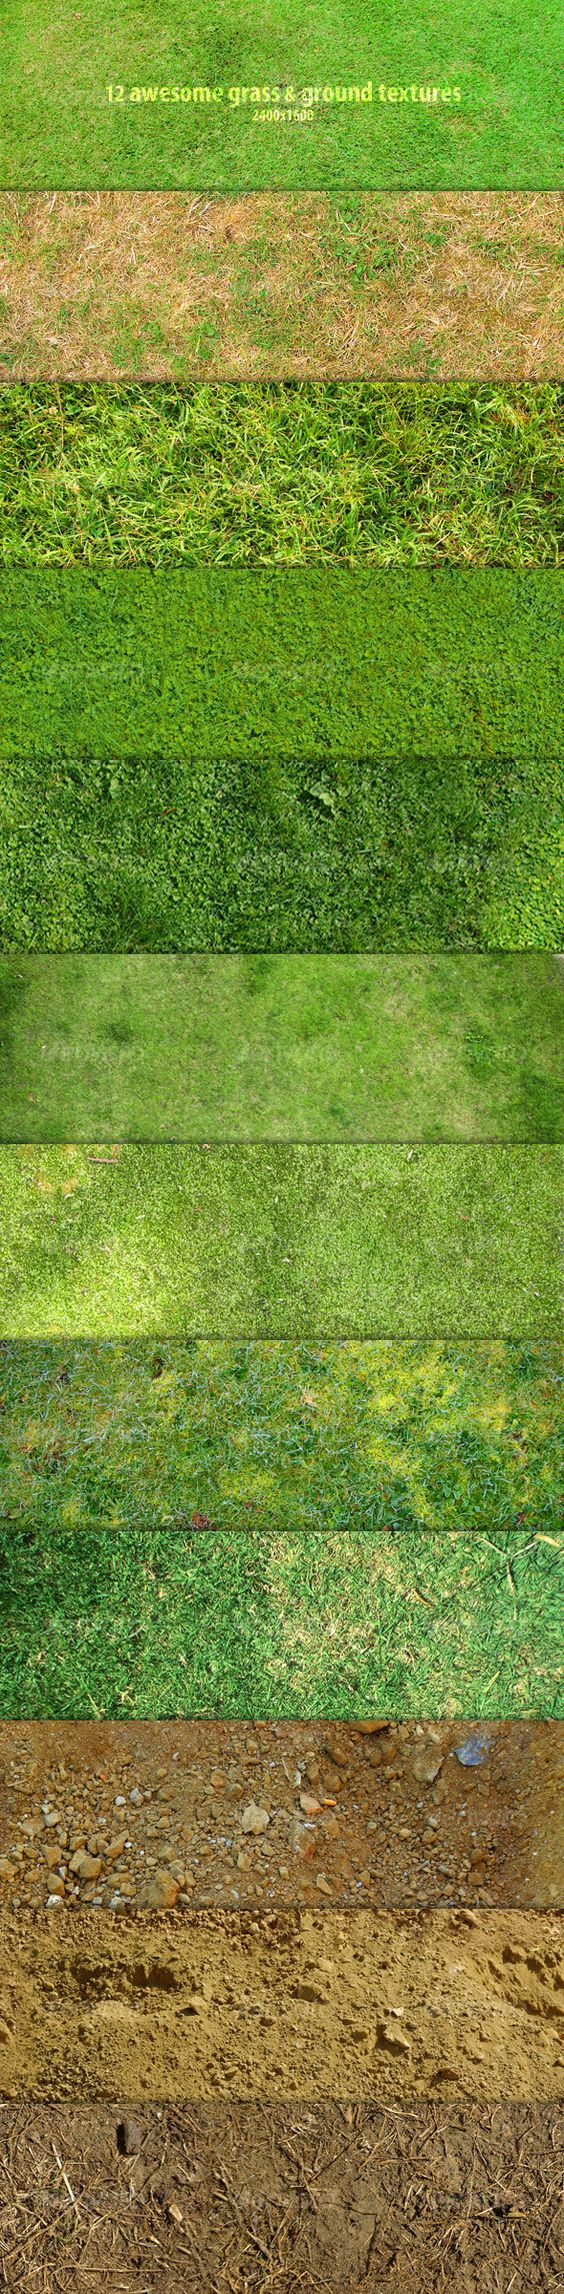 Textures nature elements vegetation dry grass dry grass - Illustration Of Green Grass Texture That Tiles Seamlessly As A Pattern Textures Pinterest Green Grass And Grasses